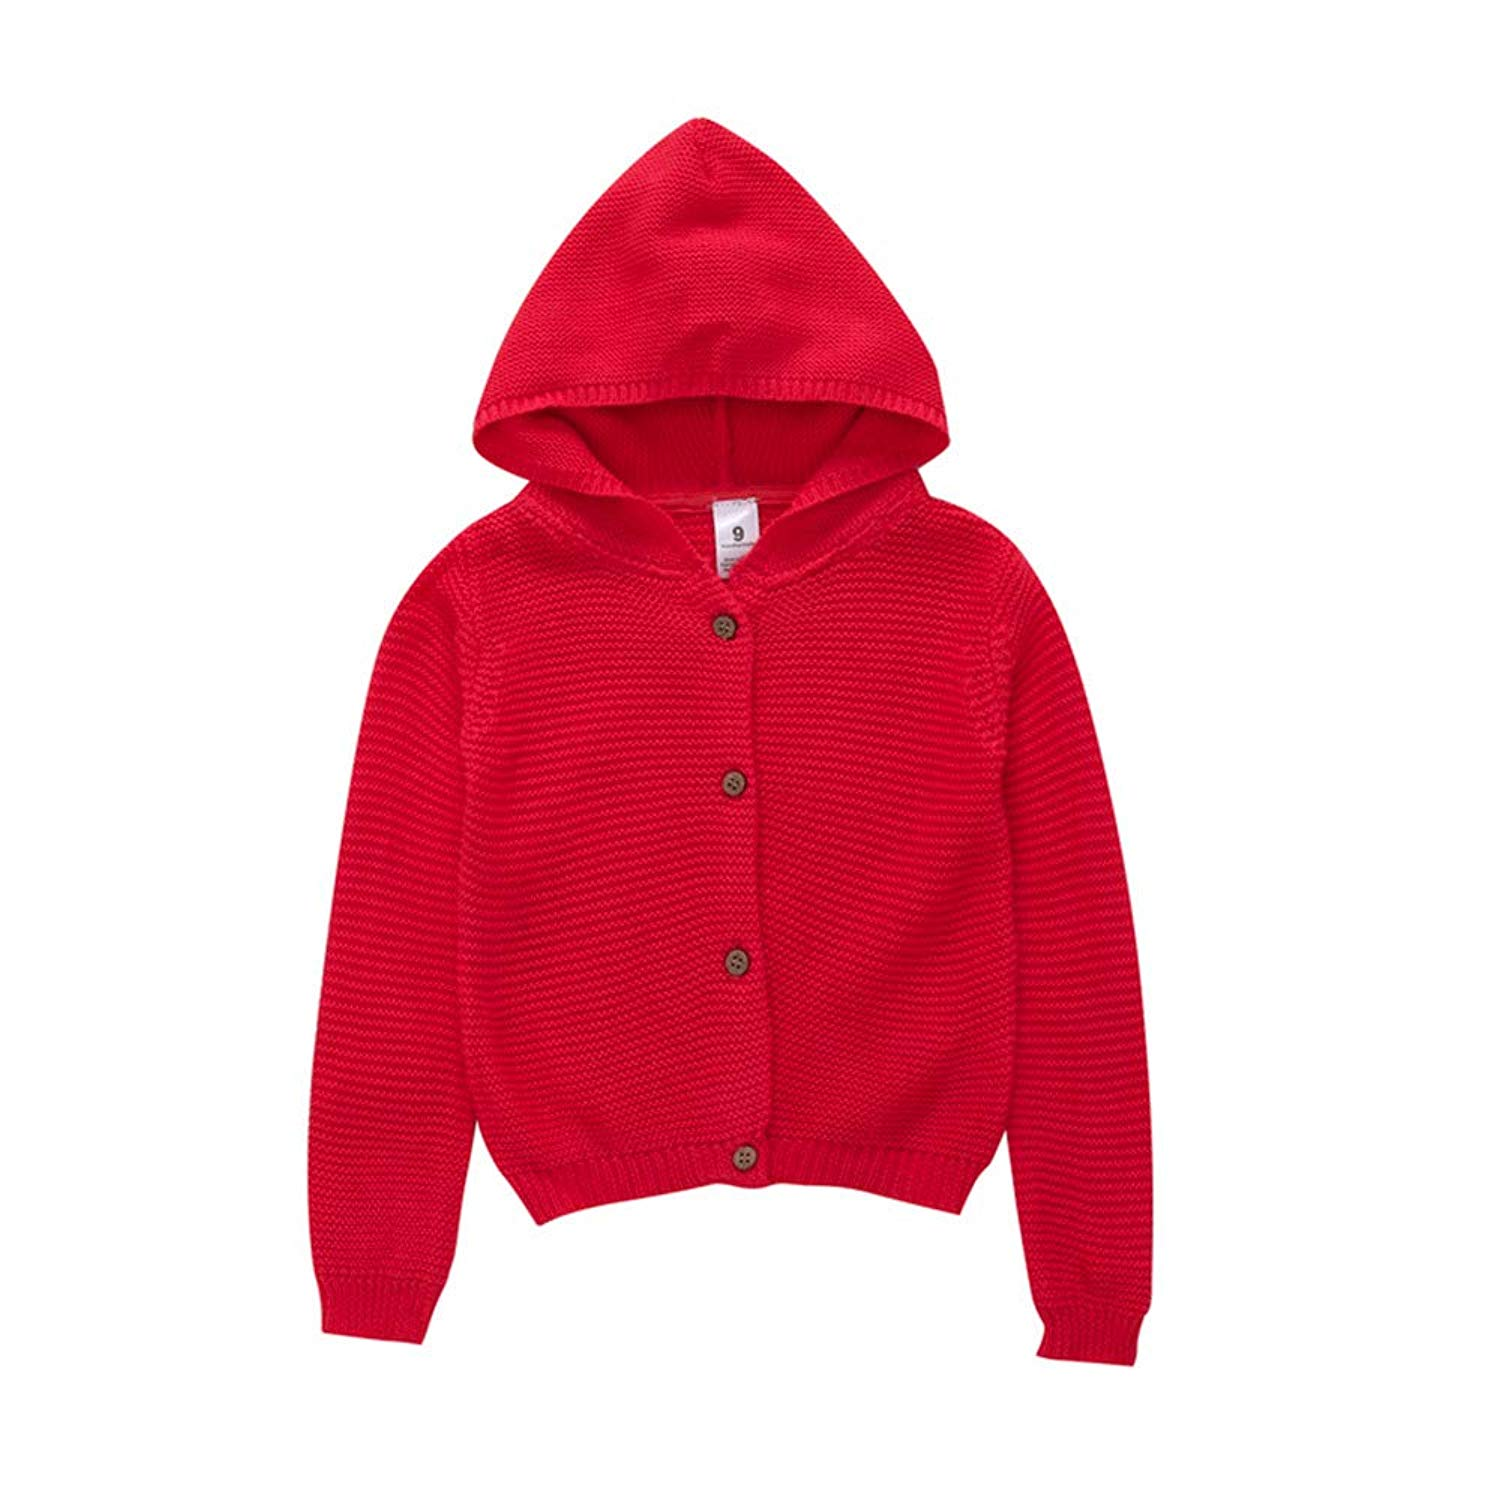 7ede59b203 Get Quotations · Tronet Baby Boy Girl Winter Knitted Bottons Hooded Tops Sweater  Infant Keep Warm Jacket Coat